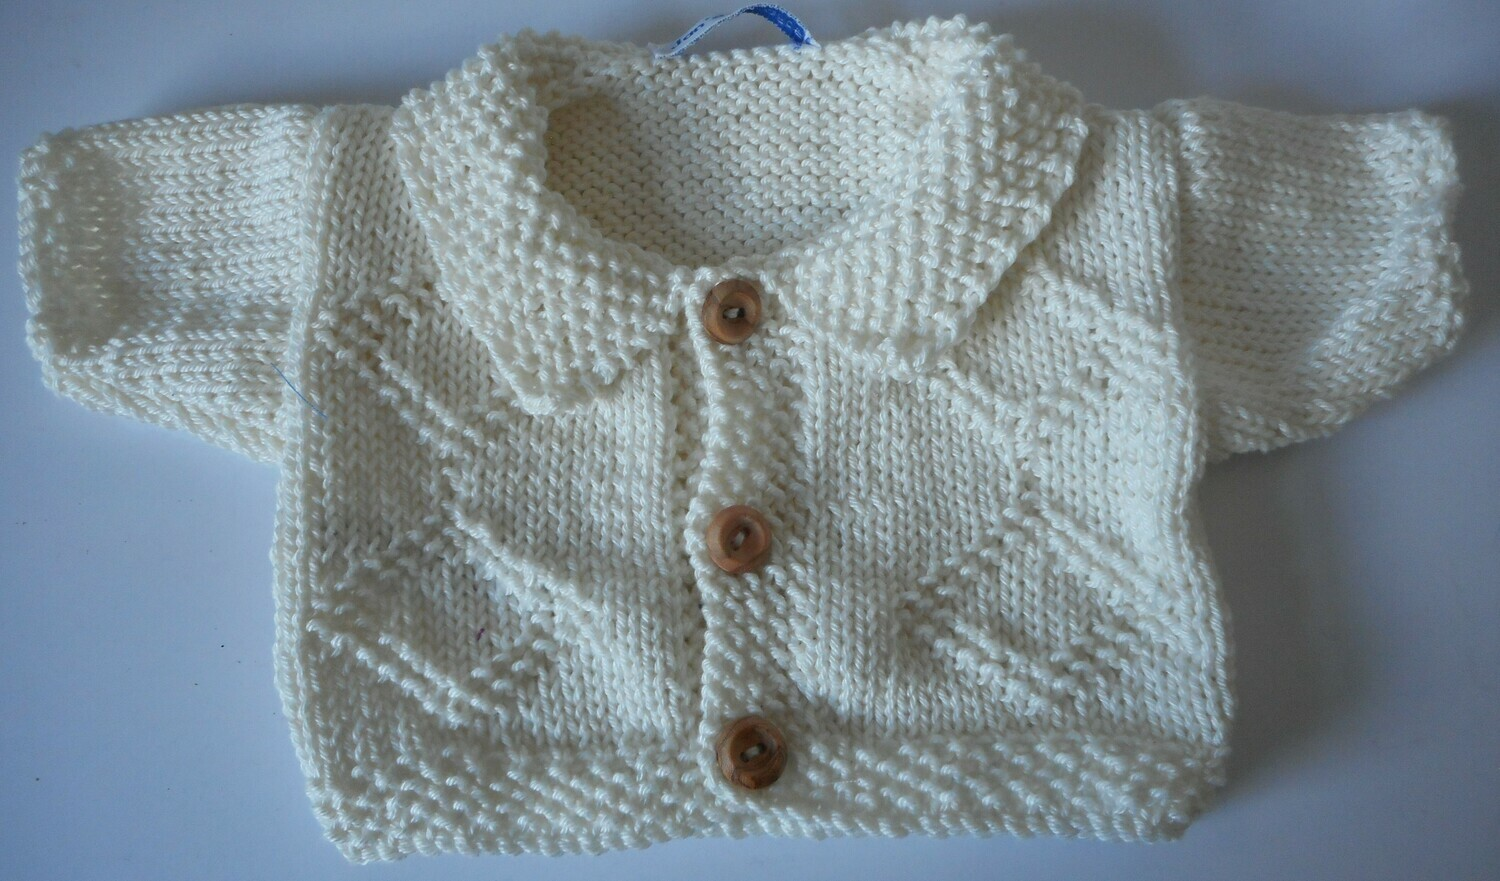 Cardigan with collar - cream with diamond pattern on front